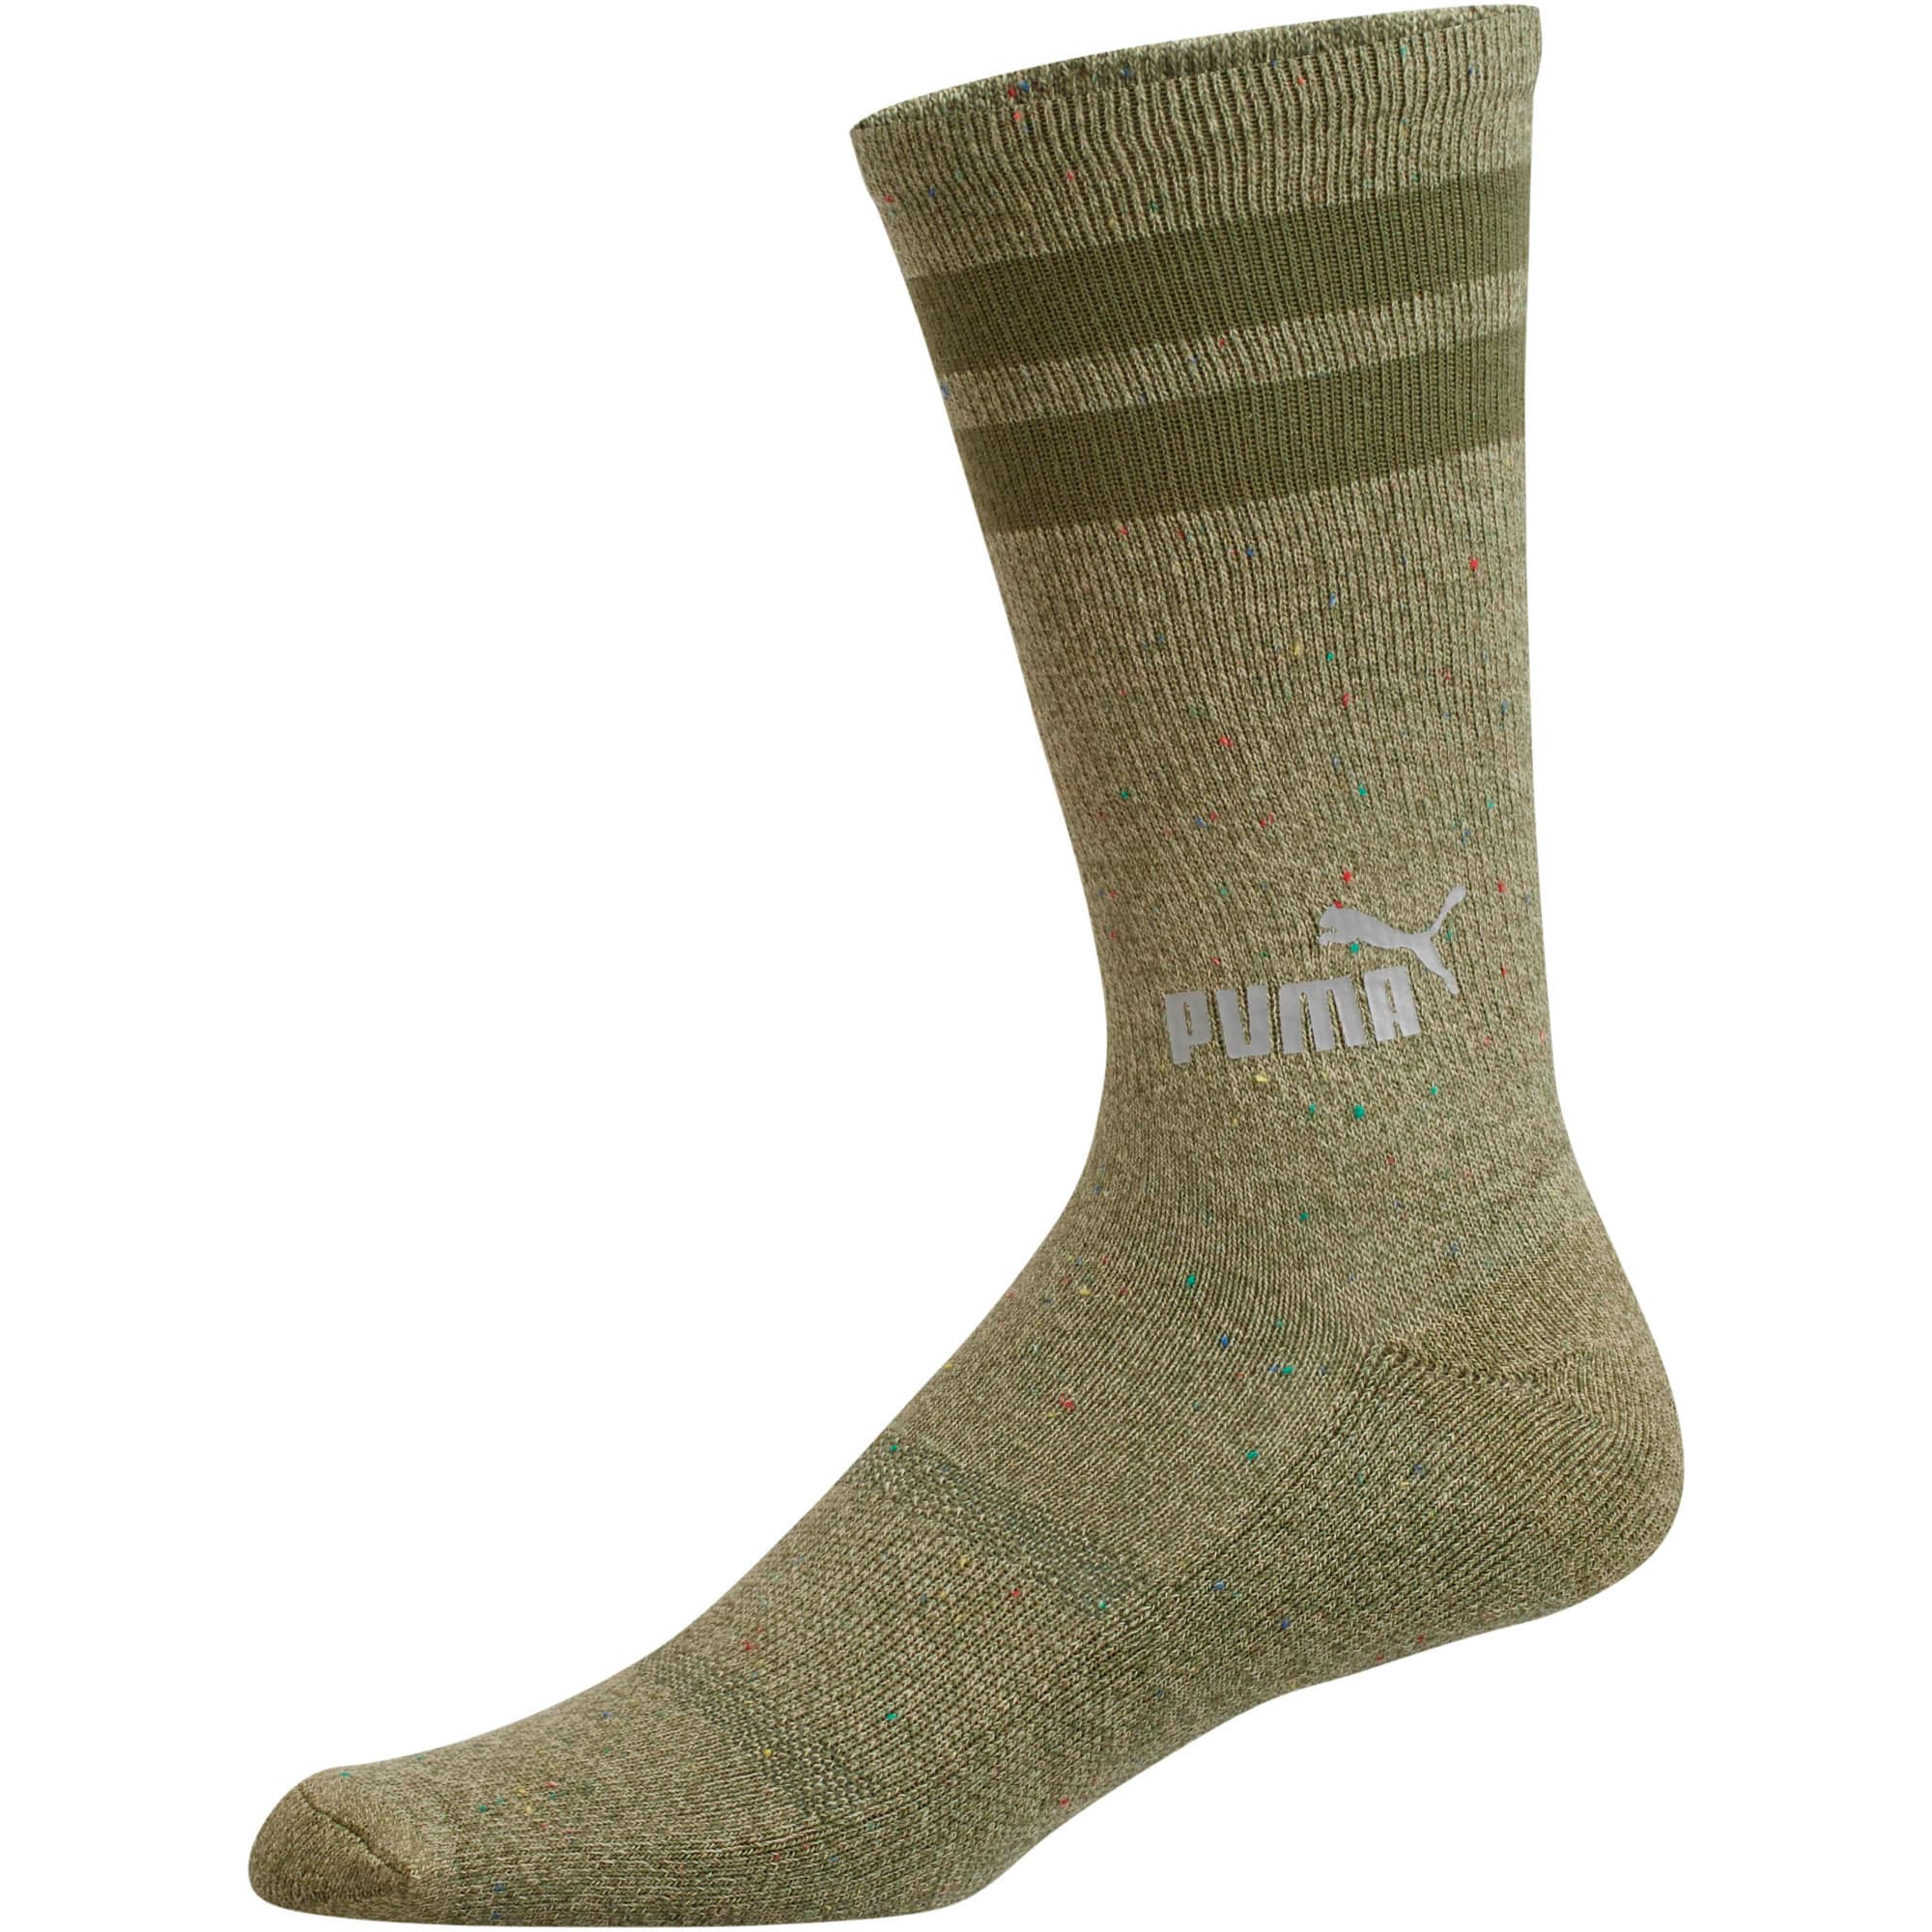 1/2 Terry Men's Crew Socks [3 Pack], OLIVE, large